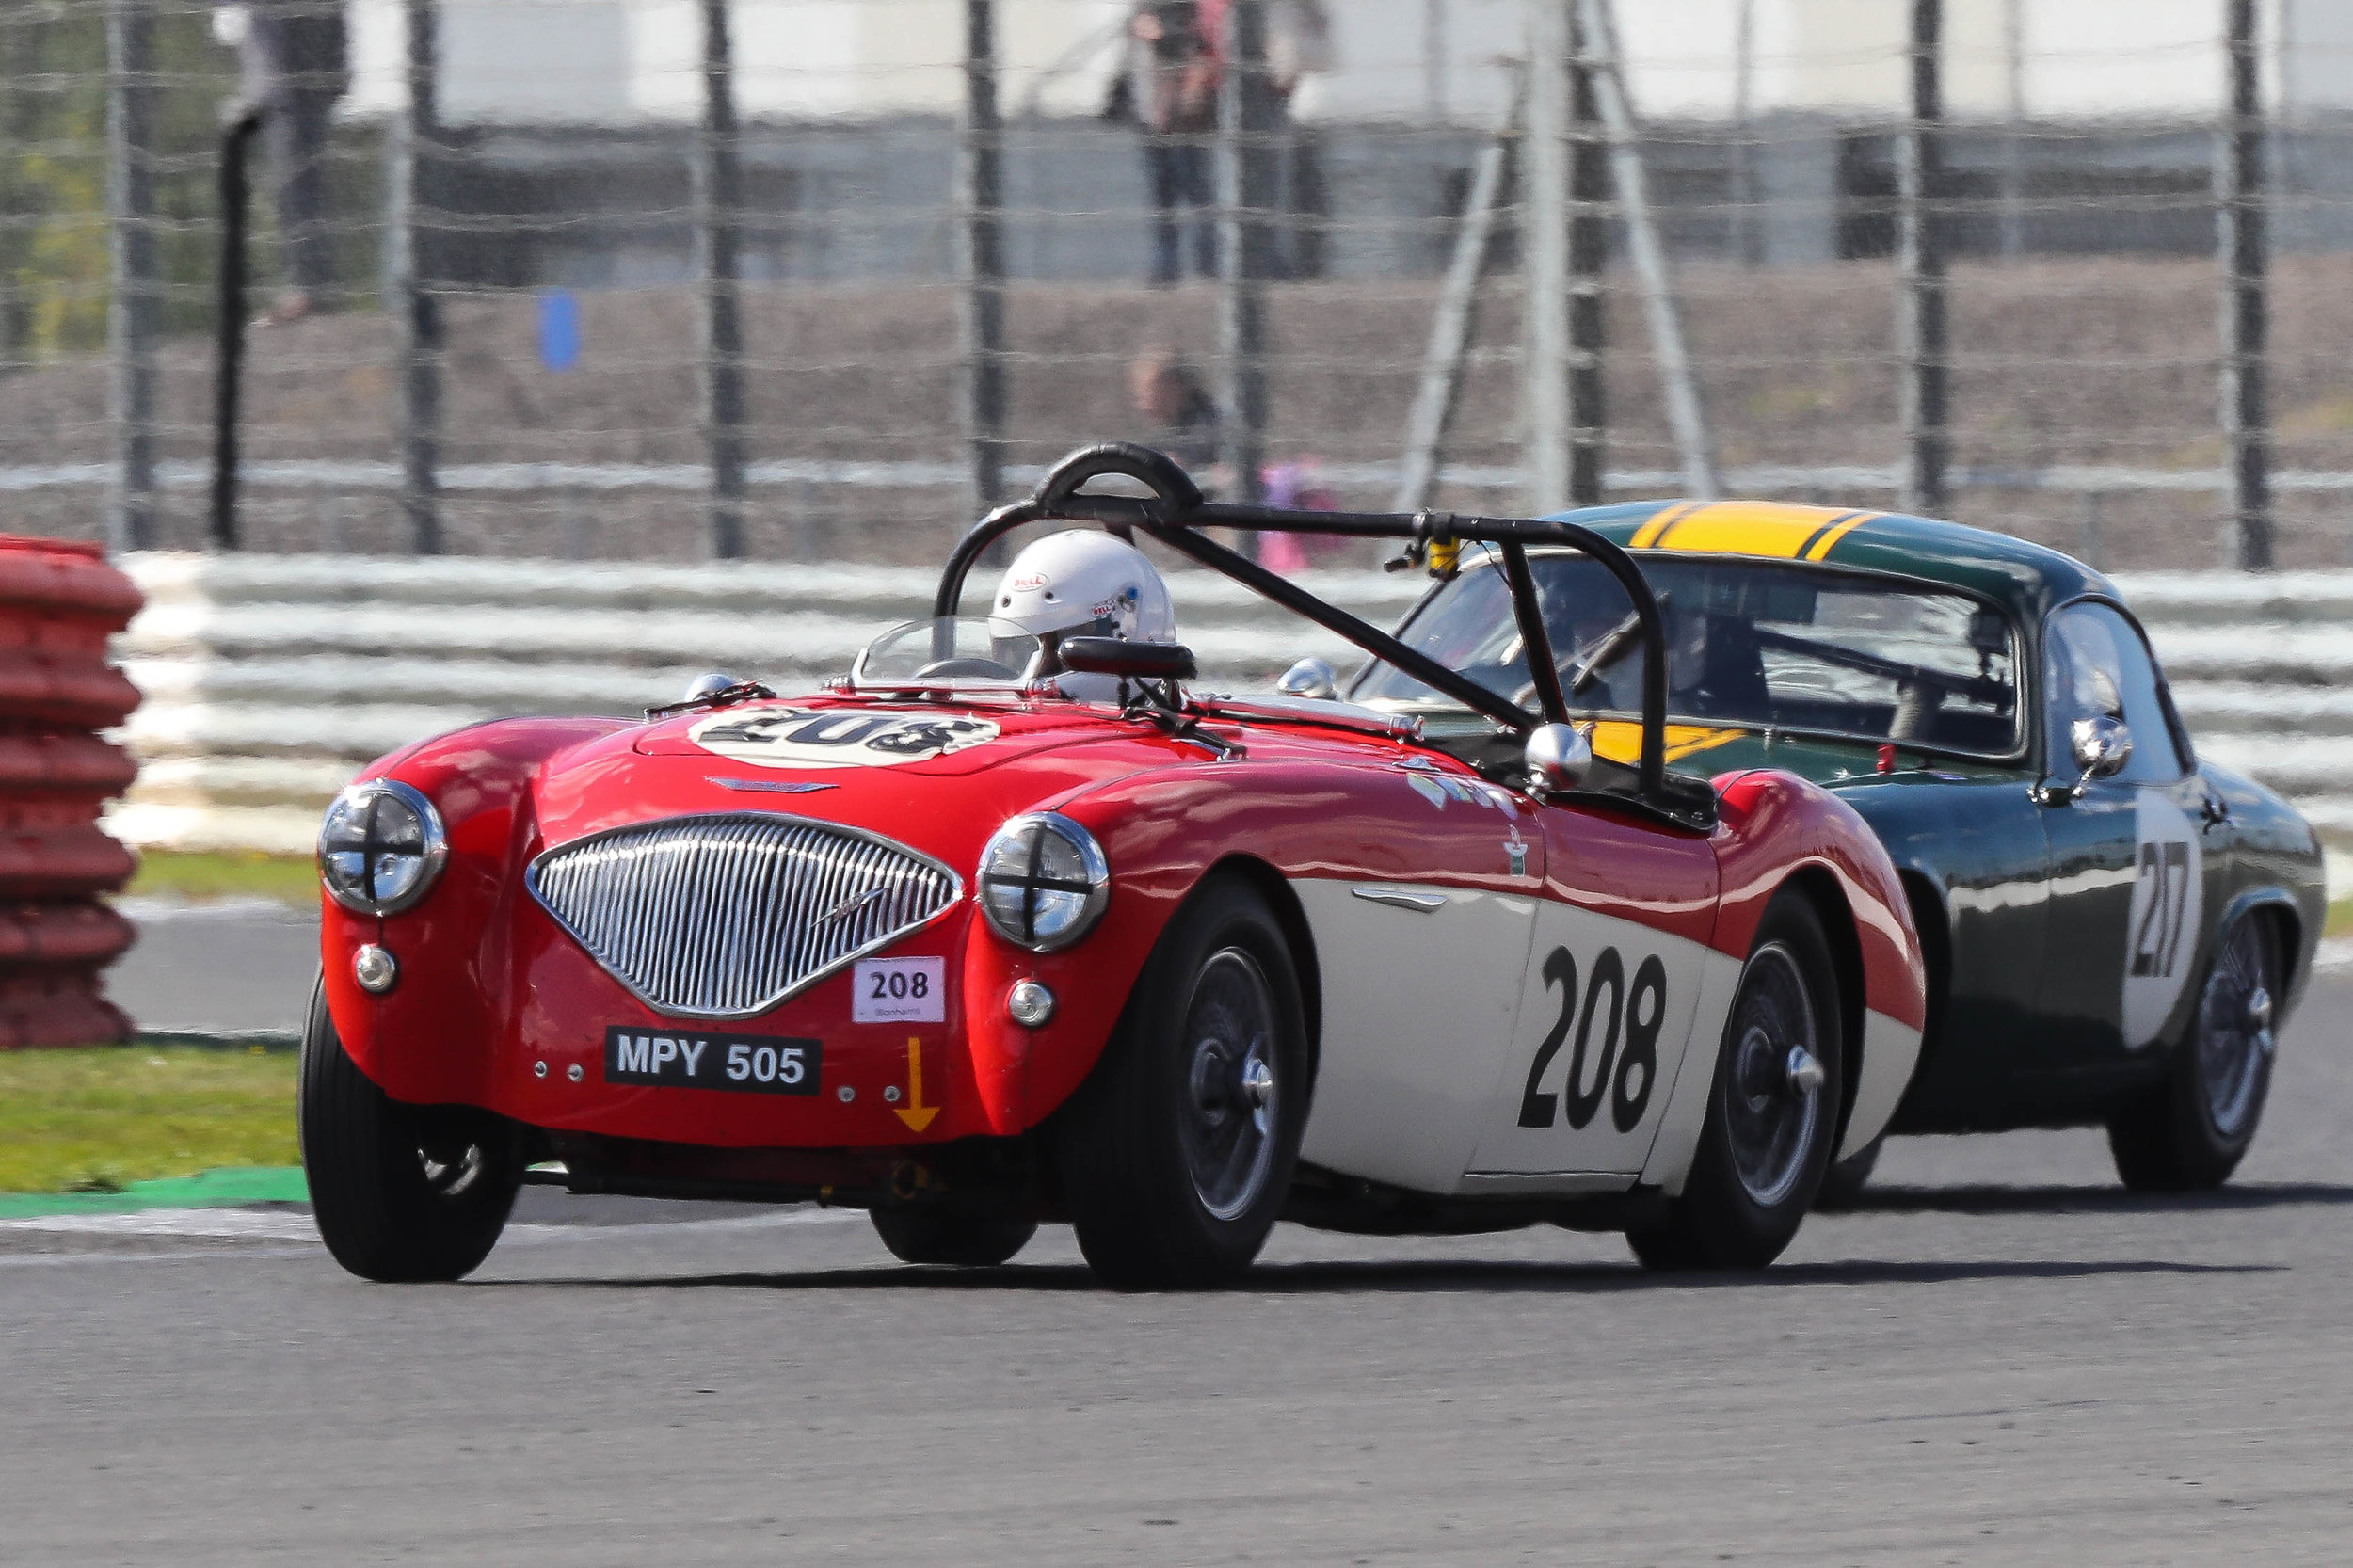 Paul Mortimer in his Austin Healey about to be overtaken by Mike Freeman in the Elite                          Photo - Richard Styles